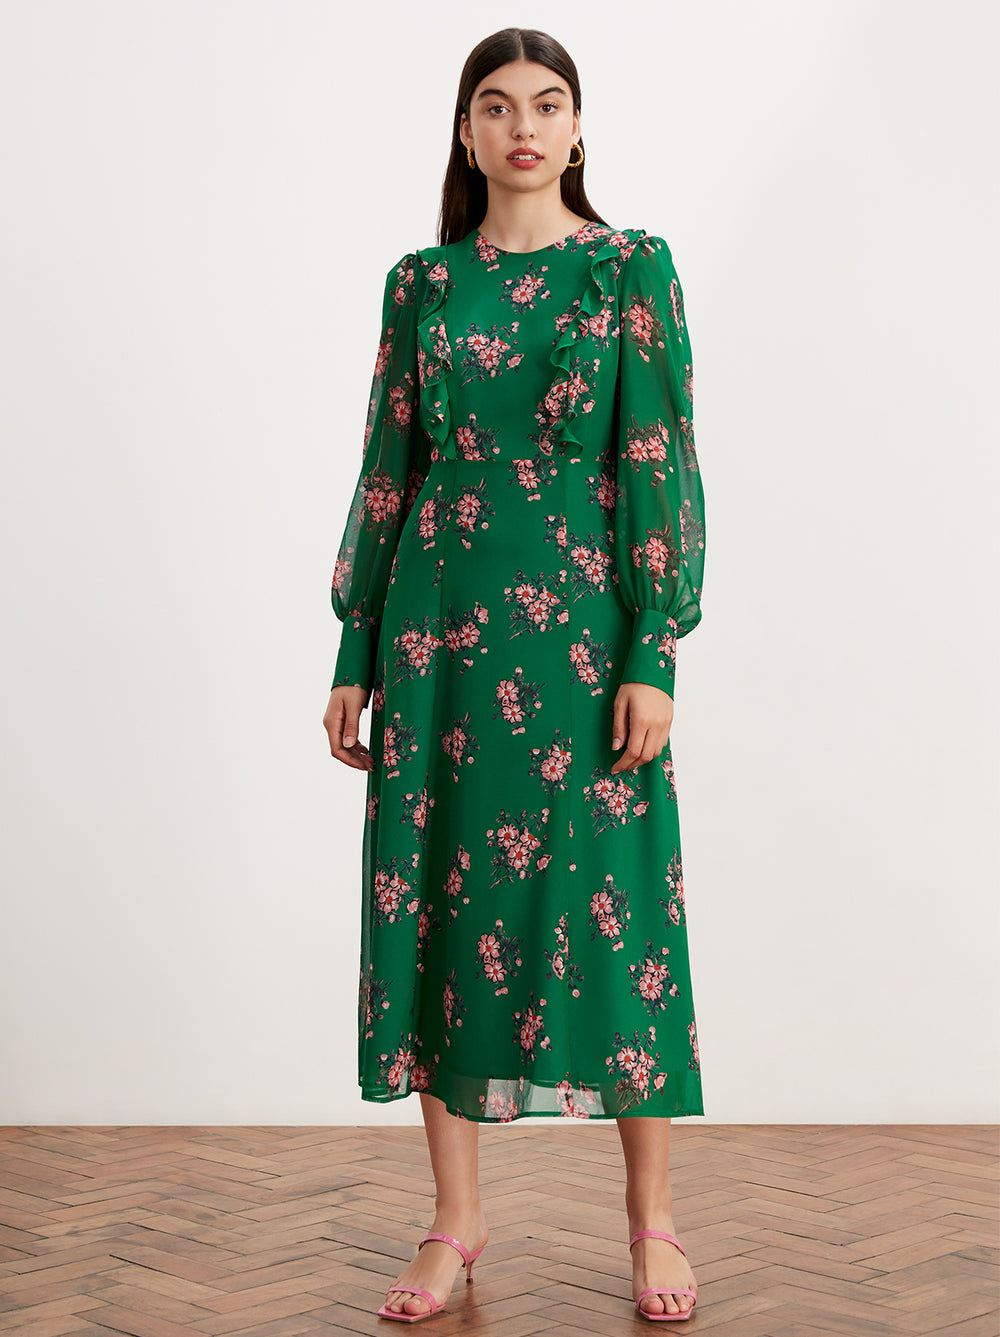 Gina Green Floral Print Vintage Dress by KITRI Studio